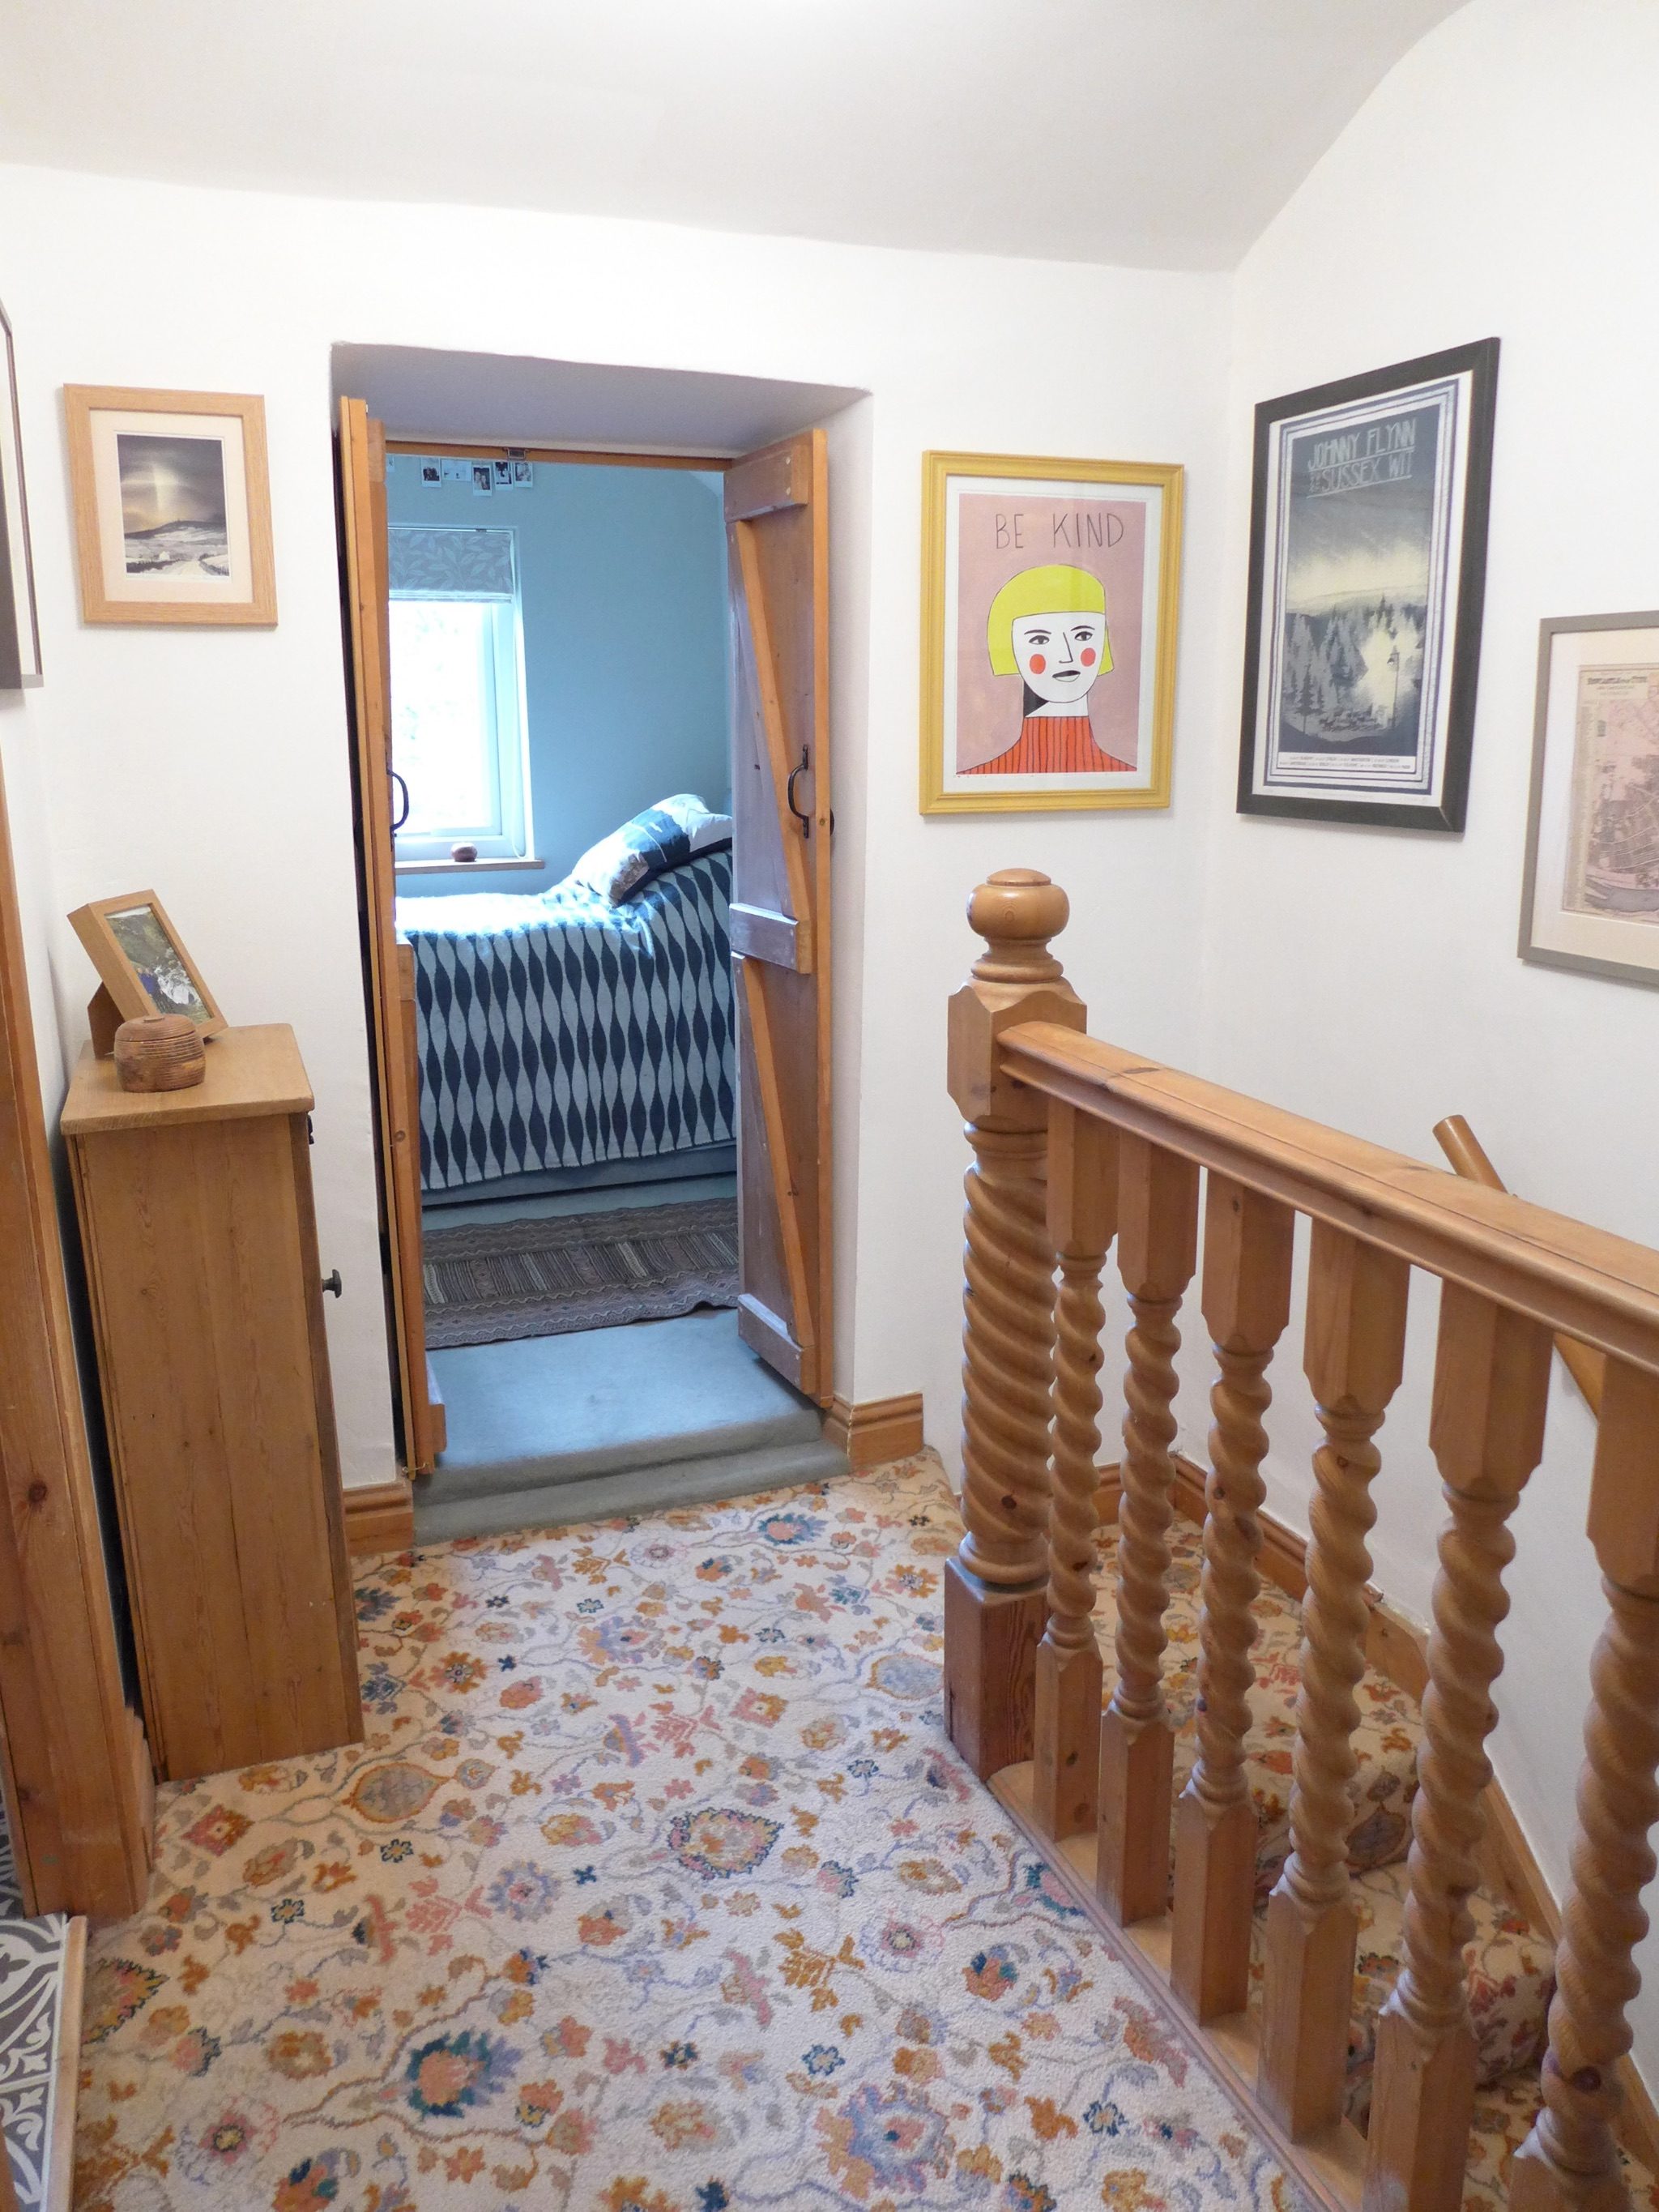 2 bedroom cottage house For Sale in Calderdale - Photograph 10.